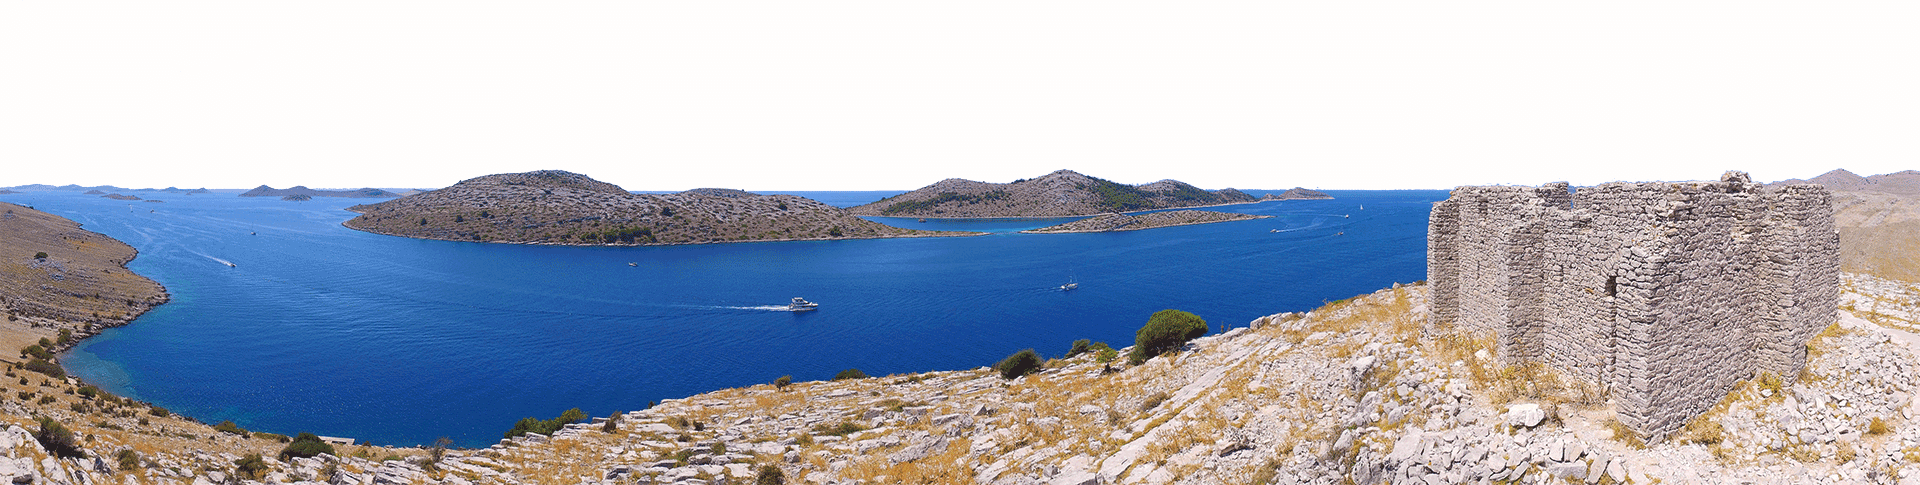 Archipelago Tours Croatia island boat tour - Kornati National Park panoramic photo with Tarac fortress in the foreground